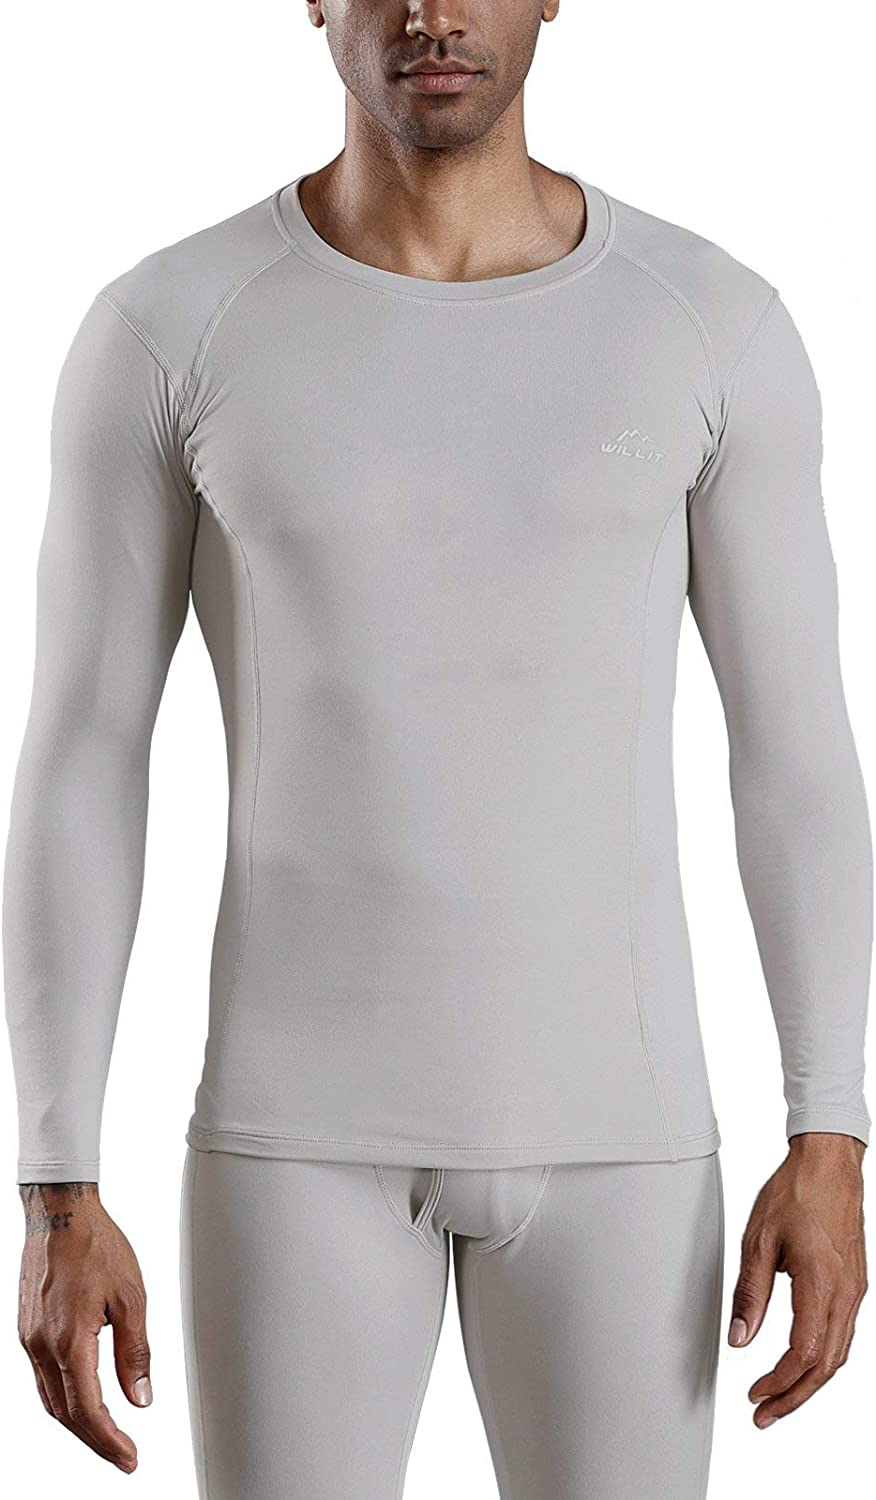 Willit Mens Thermal Base Layer Tops Long Sleeve Underwear Shirts Lightweight Fleece Lined Long Johns